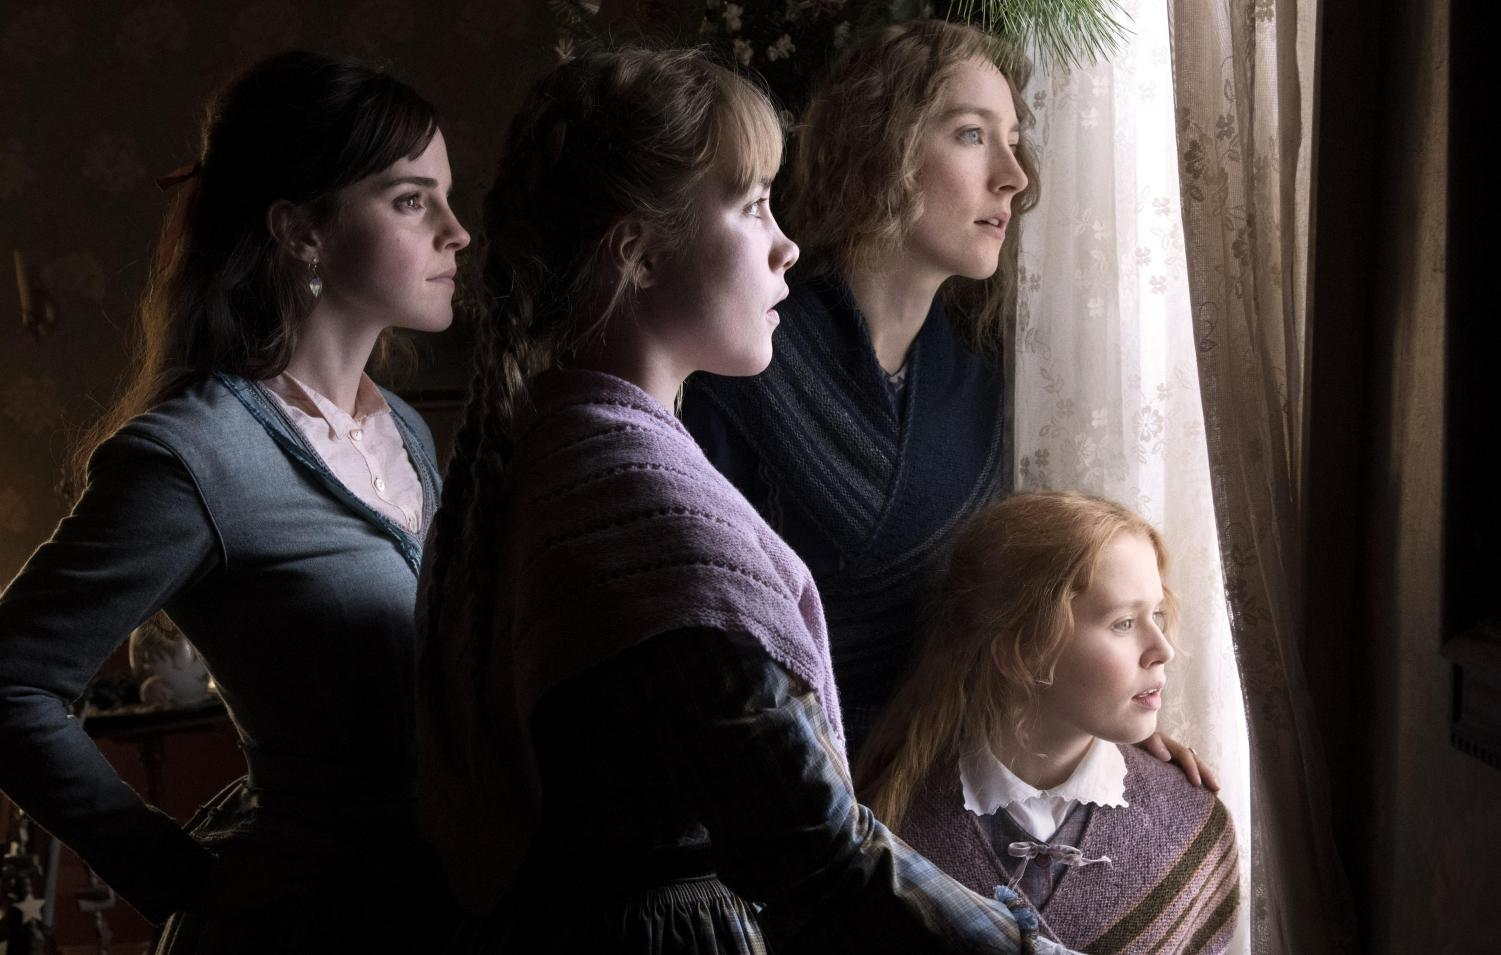 Emma Watson, Saoirse Ronan, Eliza Scanlen and Florence Pugh as the March sisters in